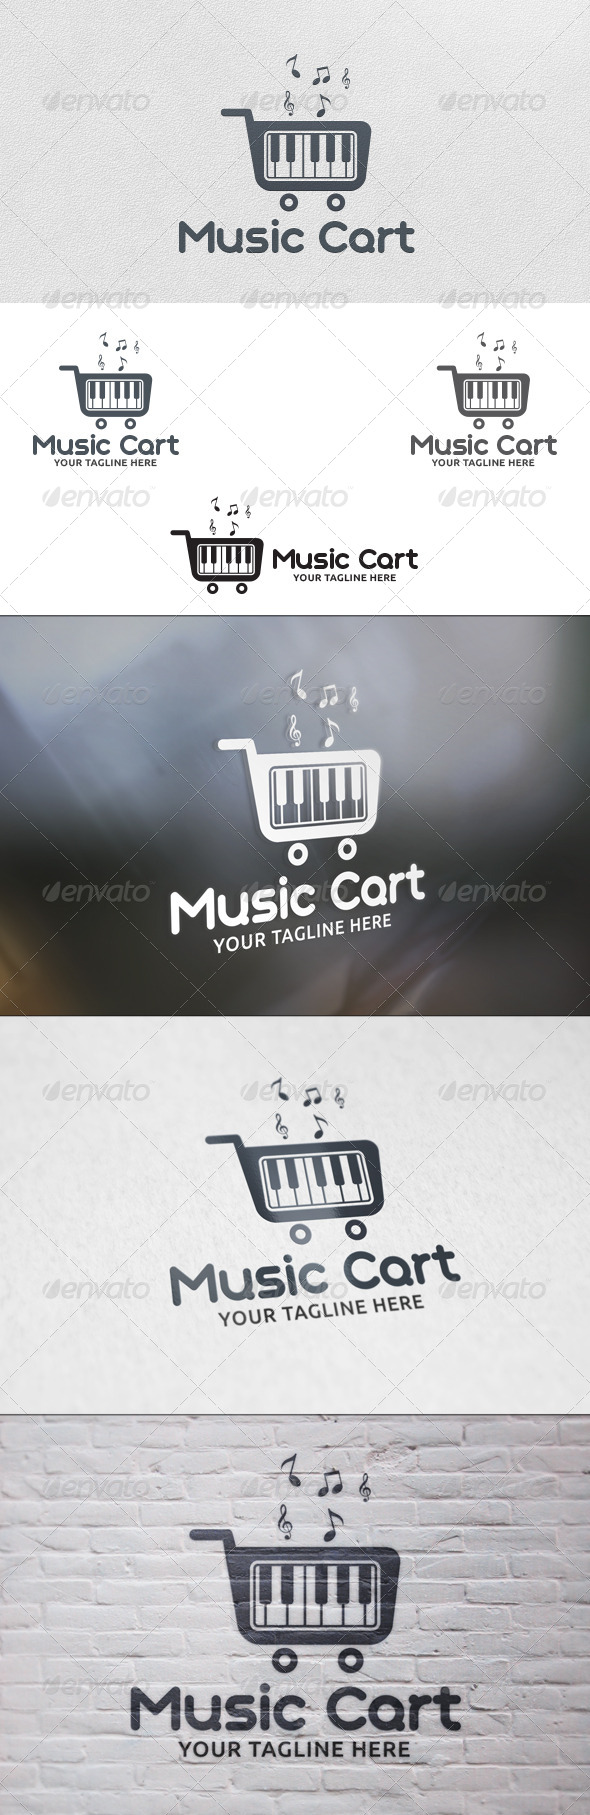 GraphicRiver Music Cart Logo Template 5735470